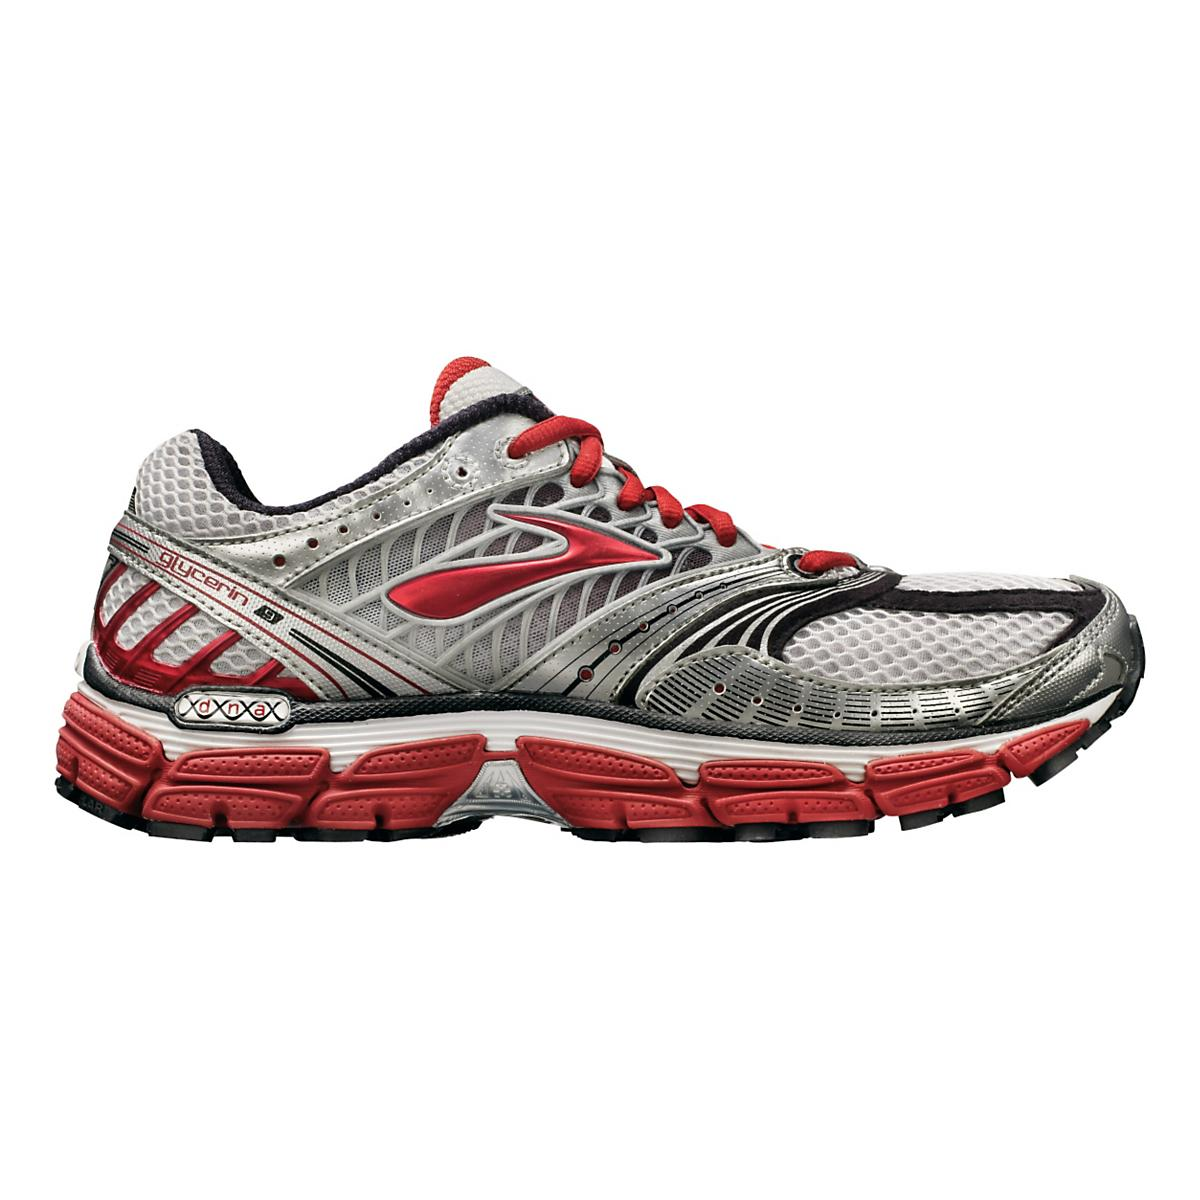 04203e34b2a Mens Brooks Glycerin 9 Running Shoe at Road Runner Sports